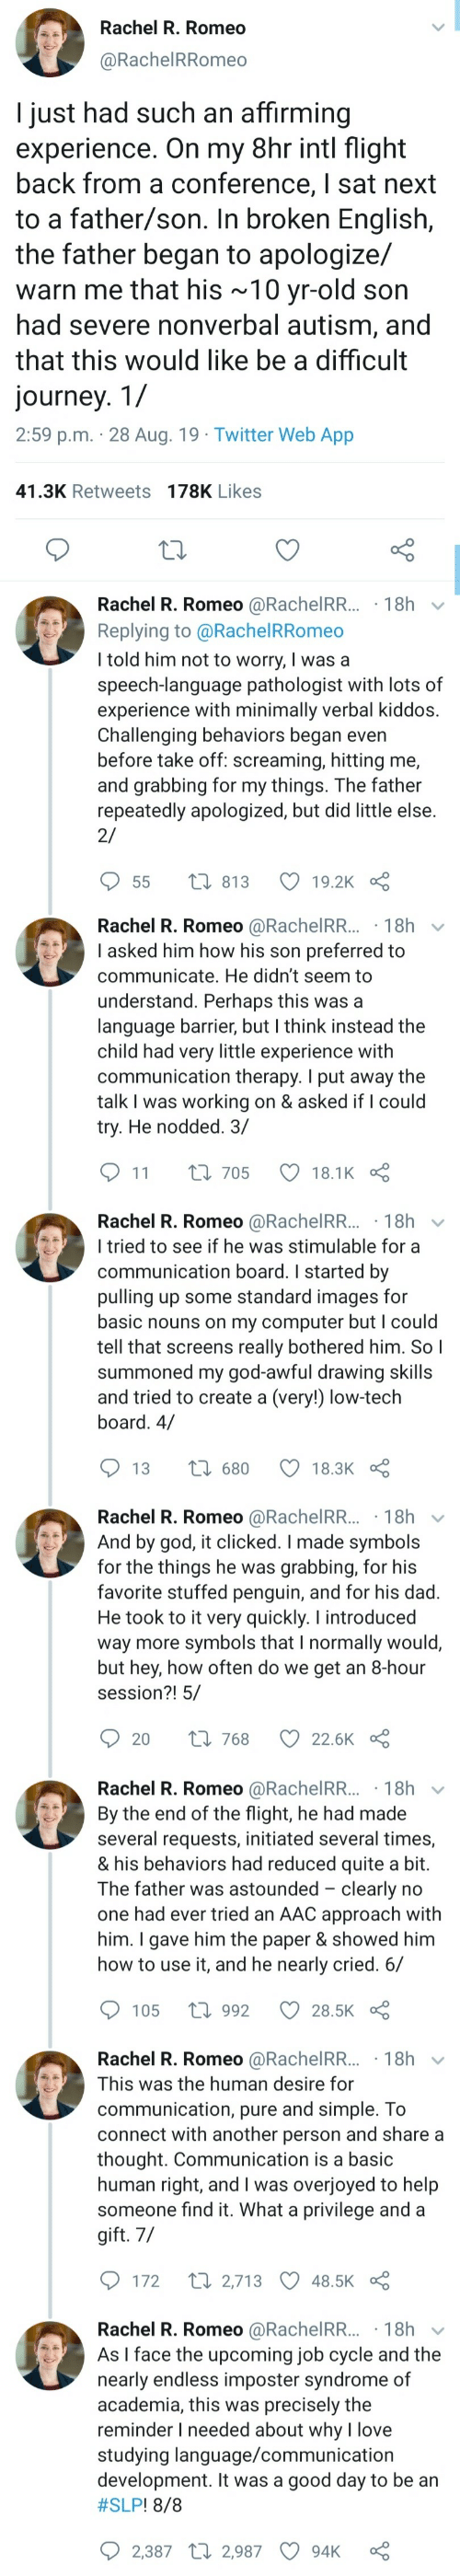 my god: Rachel R. Romeo  @RachelRRomeo  I just had such an affirming  experience. On my 8hr intl flight  back from a conference, I sat next  to a father/son. In broken English,  the father began to apologize/  warn me that his ~10 yr-old son  had severe nonverbal autism, and  that this would like be a difficult  journey. 1/  2:59 p.m. 28 Aug. 19 Twitter Web App  41.3K Retweets 178K Likes  Rachel R. Romeo @RachelRR... 18h  Replying to @Rachel RRomeo  I told him not to worry, I was a  speech-language pathologist with lots of  experience with minimally verbal kiddos.  Challenging behaviors began even  before take off: screaming, hitting me,  and grabbing for my things. The father  repeatedly apologized, but did little else  2/  t 813  19.2K  55   Rachel R. Romeo @RachelRR...18h  I asked him how his son preferred to  communicate. He didn't seem to  understand. Perhaps this was a  language barrier, but I think instead the  child had very little experience with  communication therapy. I put away the  talk I was working on & asked if I could  try. He nodded. 3/  11  L 705  18.1K  Rachel R. Romeo @RachelRR... 18h  I tried to see if he was stimulable for a  communication board. I started by  pulling up some standard images for  basic nouns on my computer but I could  tell that screens really bothered him. So I  summoned my god-awful drawing skills  and tried to create a (very!) low-tech  board. 4/  1680  13  18.3K  Rachel R. Romeo @RachelRR... 18h  And by god, it clicked. I made symbols  for the things he was  favorite stuffed penguin, and for his dad.  He took to it very quickly. I introduced  way more symbols that I normally would,  but hey, how often do we get an 8-hour  session?! 5/  grabbing, for his  Li 768  20  22.6K   Rachel R. Romeo @RachelRR... 18h  By the end of the flight, he had made  several requests, initiated several times,  & his behaviors had reduced quite a bit.  The father was astounded clearly no  one had ever tried an AAC approach with  him. I gave him the paper & showed him  how to use it, and he nearly cried. 6/  1992  105  28.5K  Rachel R. Romeo @RachelRR... 18h  This was the human desire for  communication, pure and simple. To  connect with another person and share a  thought. Communication is a basic  human right, and I was overjoyed to help  someone find it. What a privilege and a  gift. 7/  t 2,713 48.5K  172  Rachel R. Romeo @RachelRR... 18h  As I face the upcoming job cycle and the  nearly endless imposter syndrome of  academia, this was precisely the  reminder I needed about why l love  studying language/communication  development. It was a good day to be an  #SLP ! 8/8  2,387 2,987  94K